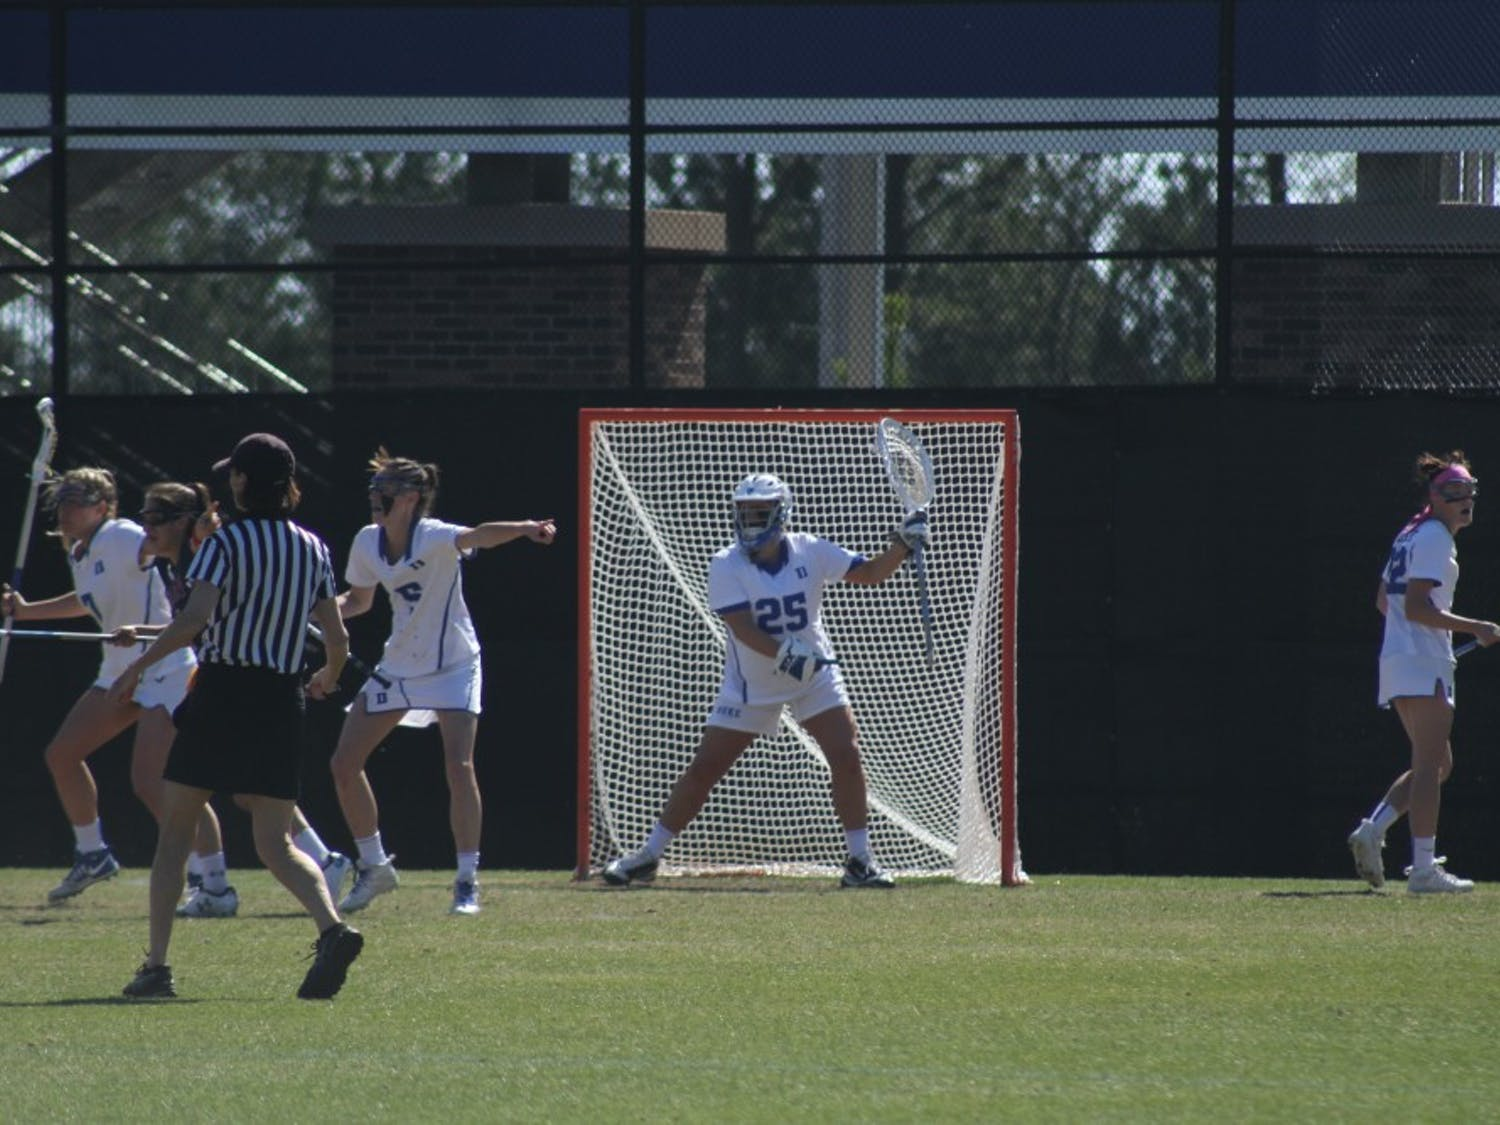 Goalkeeper Kelsey Duryea recorded her 500th career save Wednesday against Georgetown, becoming just the third Blue Devil to reach that threshold.